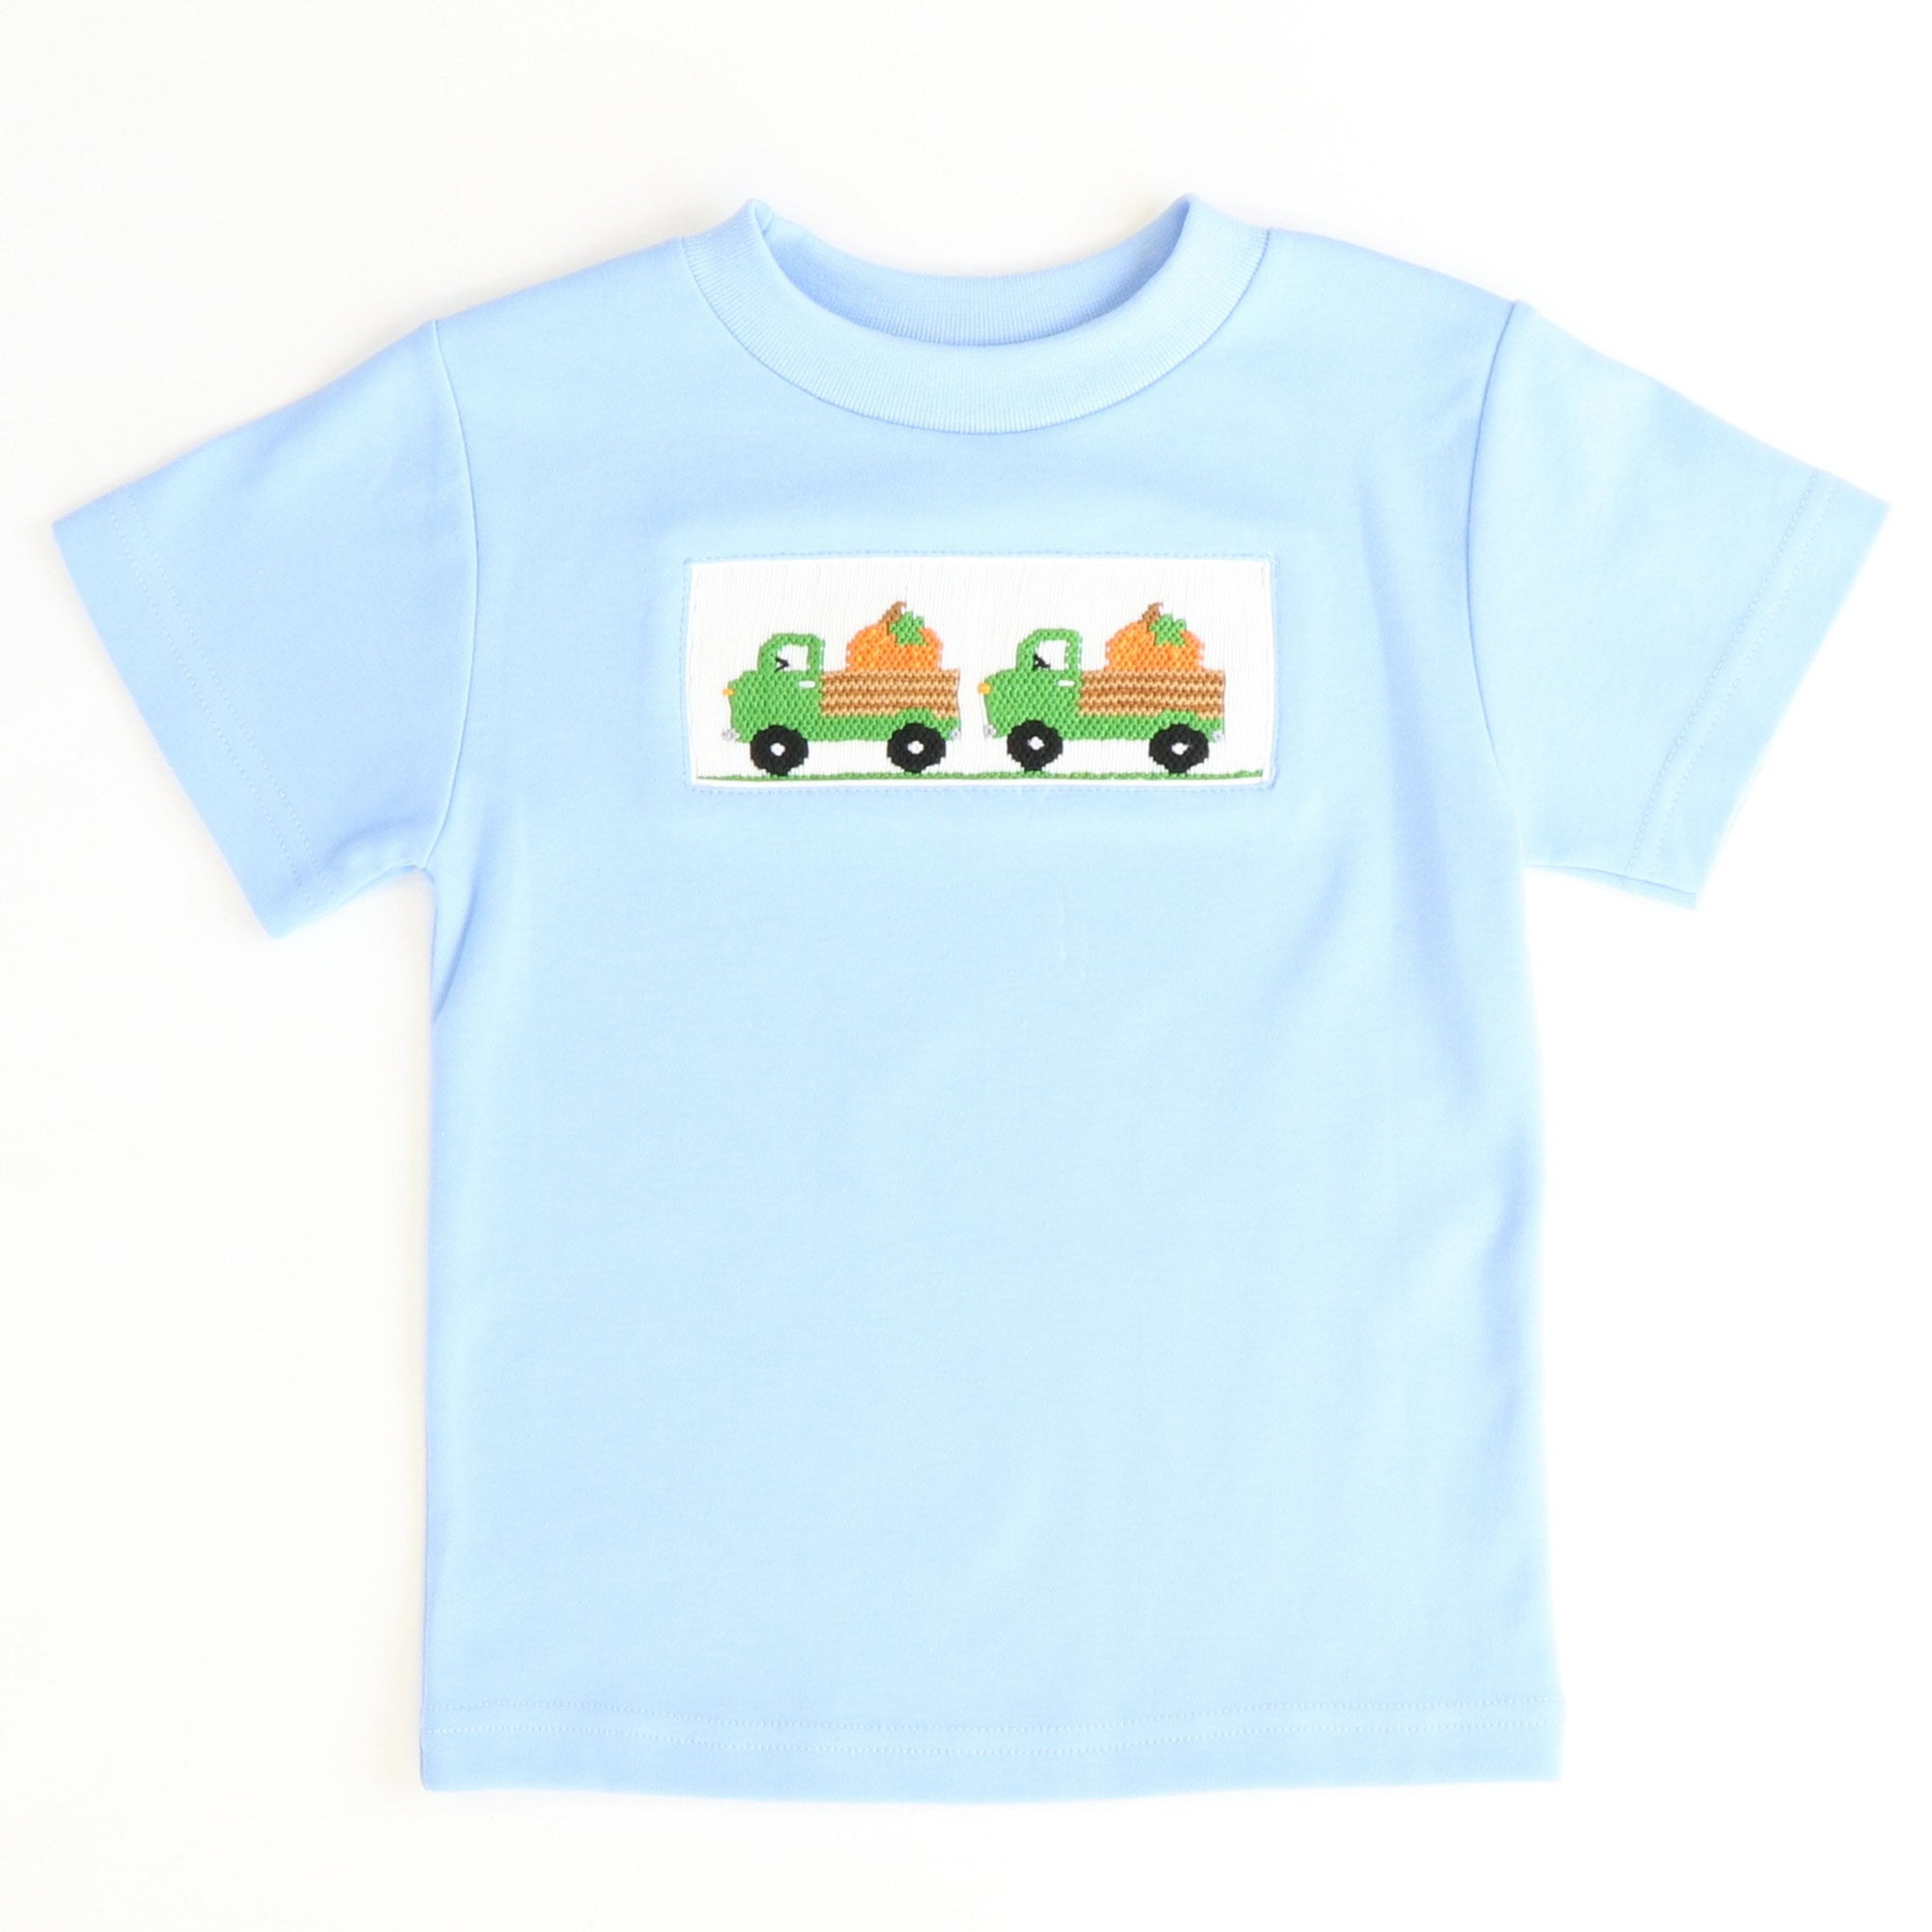 Smocked Pumpkins & Trucks T-Shirt - Light Blue